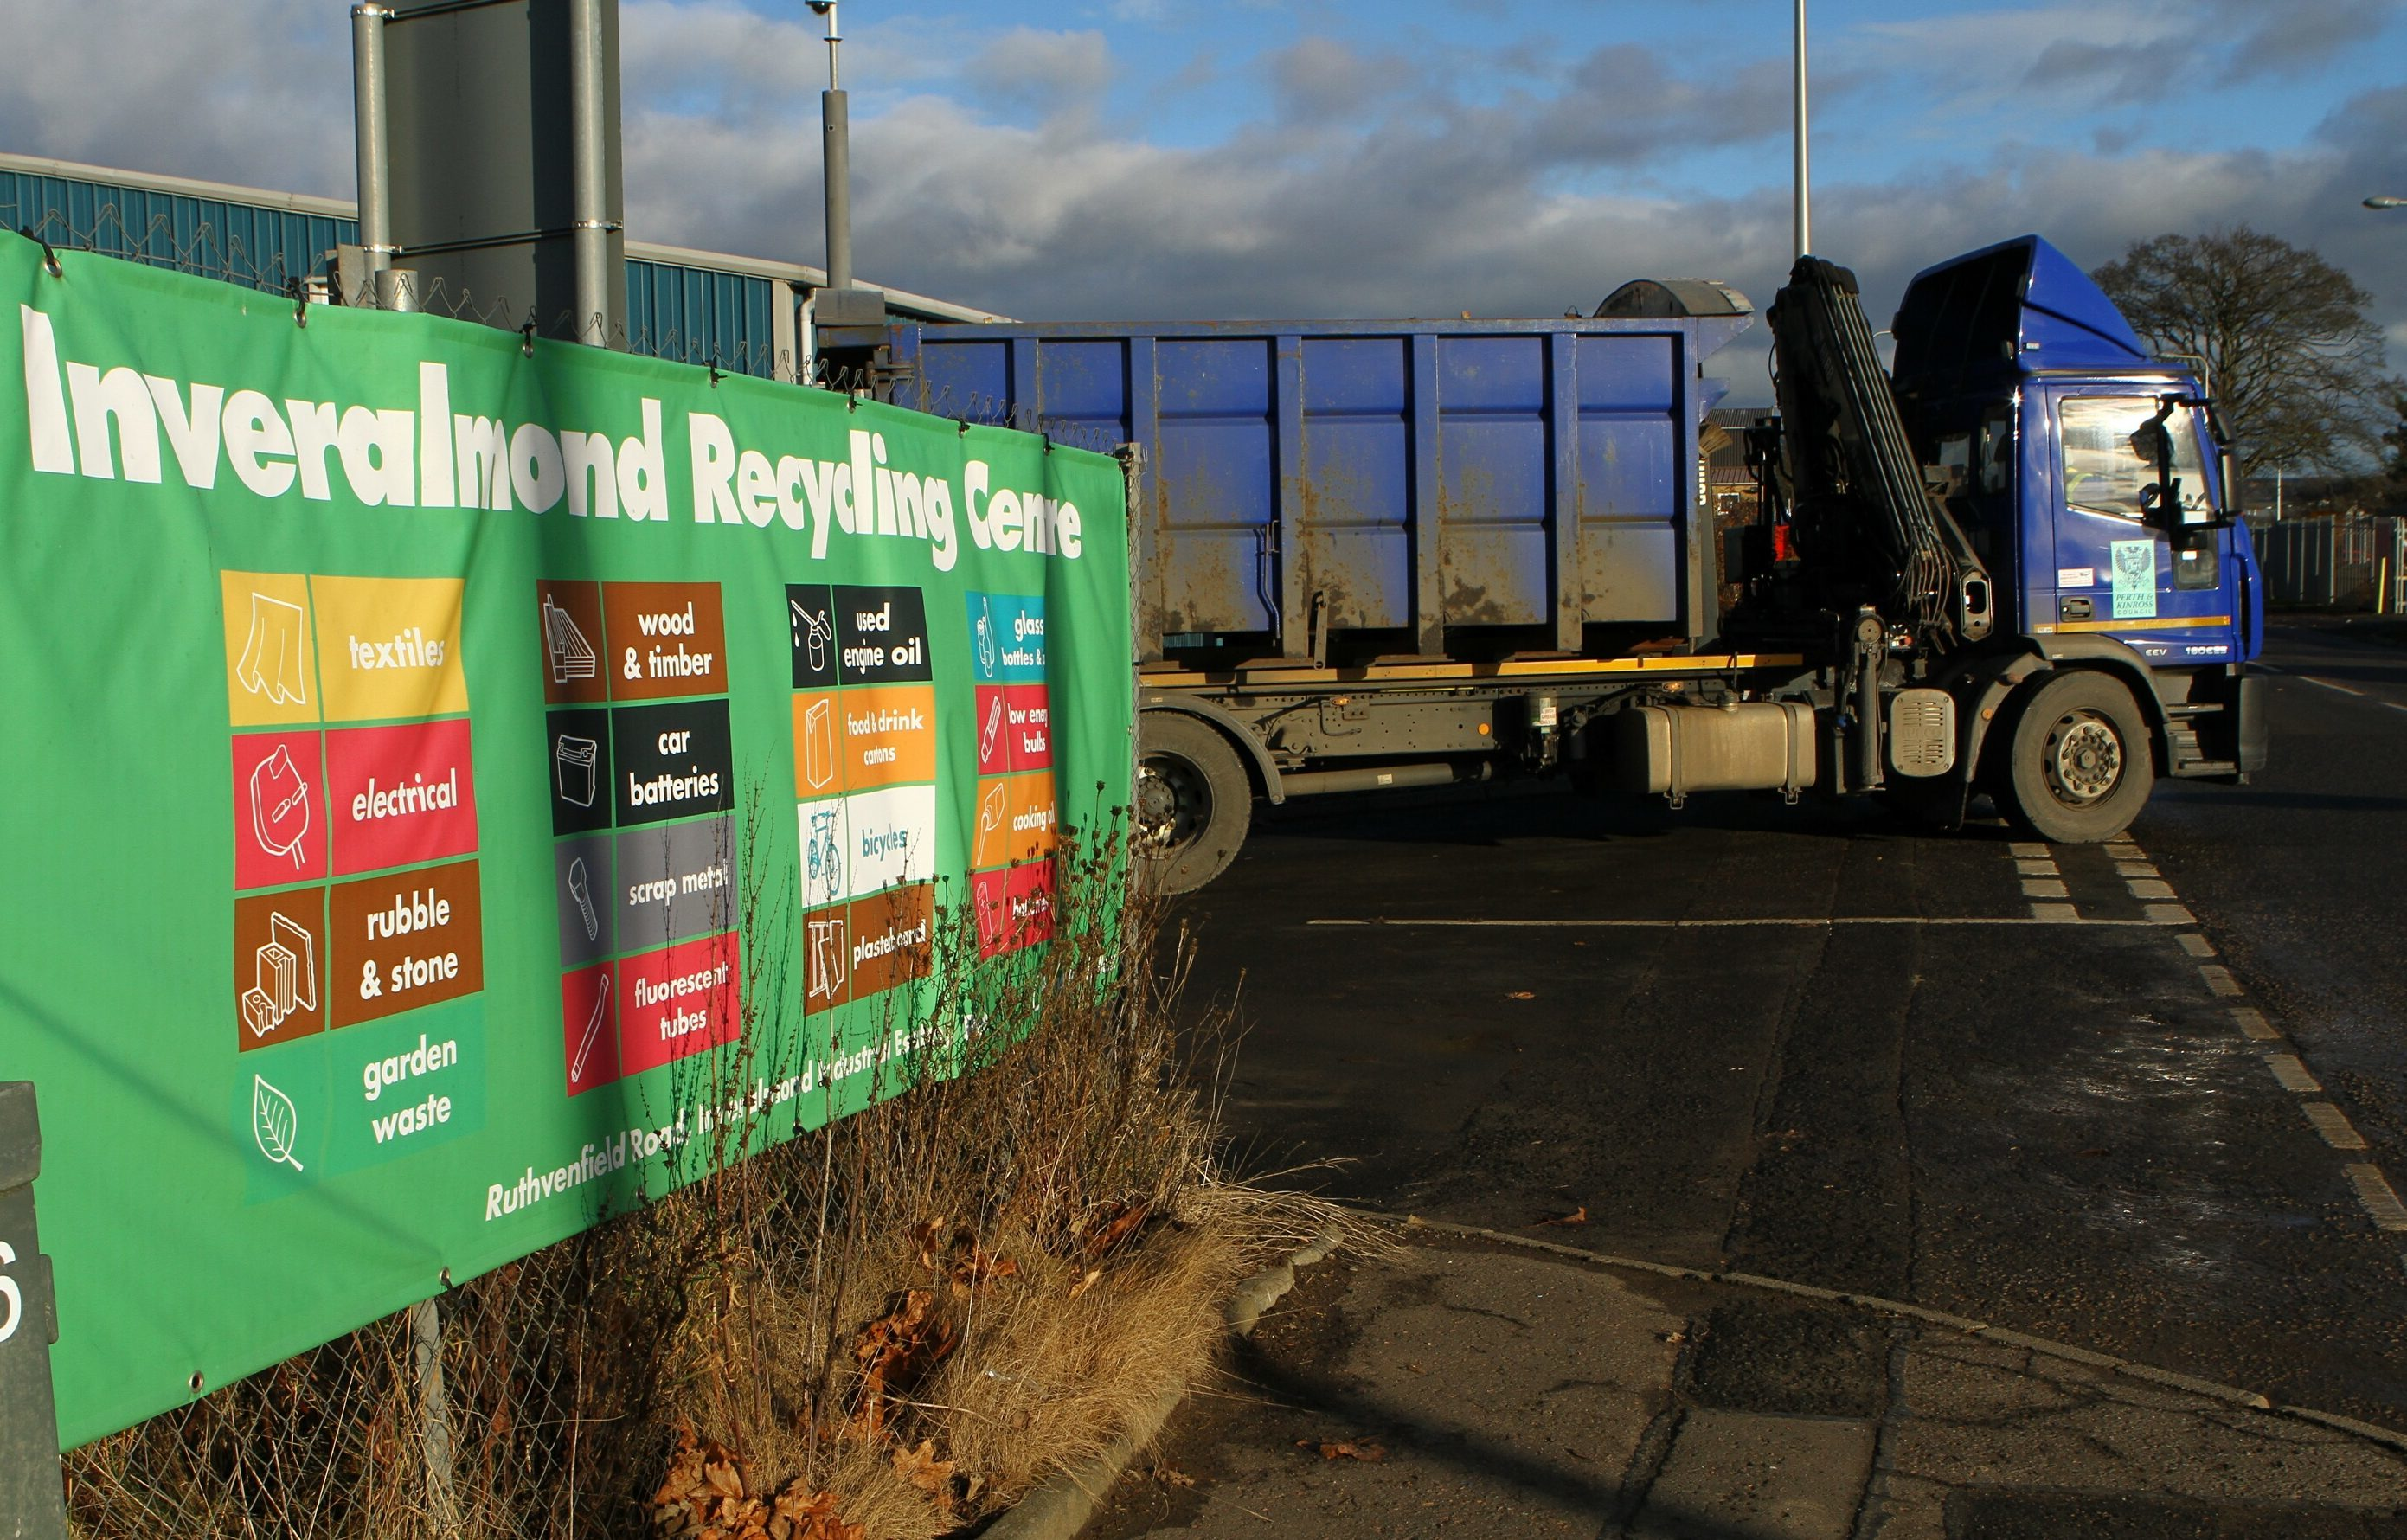 The recycling site at Inveralmond Industrial Estate in Perth.